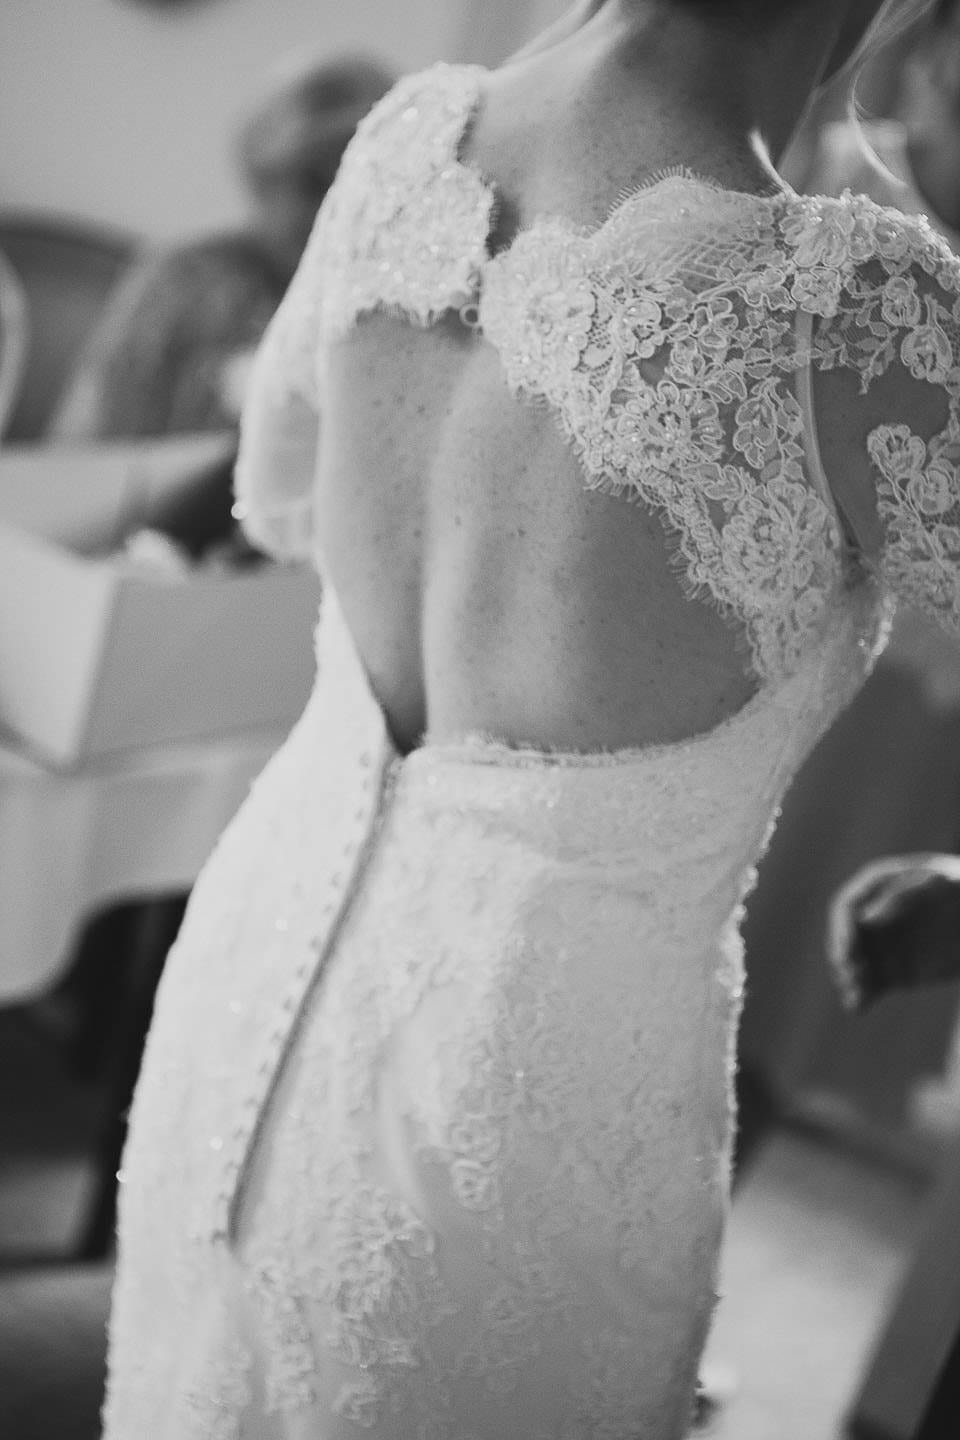 Black and white image of the rear of brides wedding dress at Bath Spa Hotel